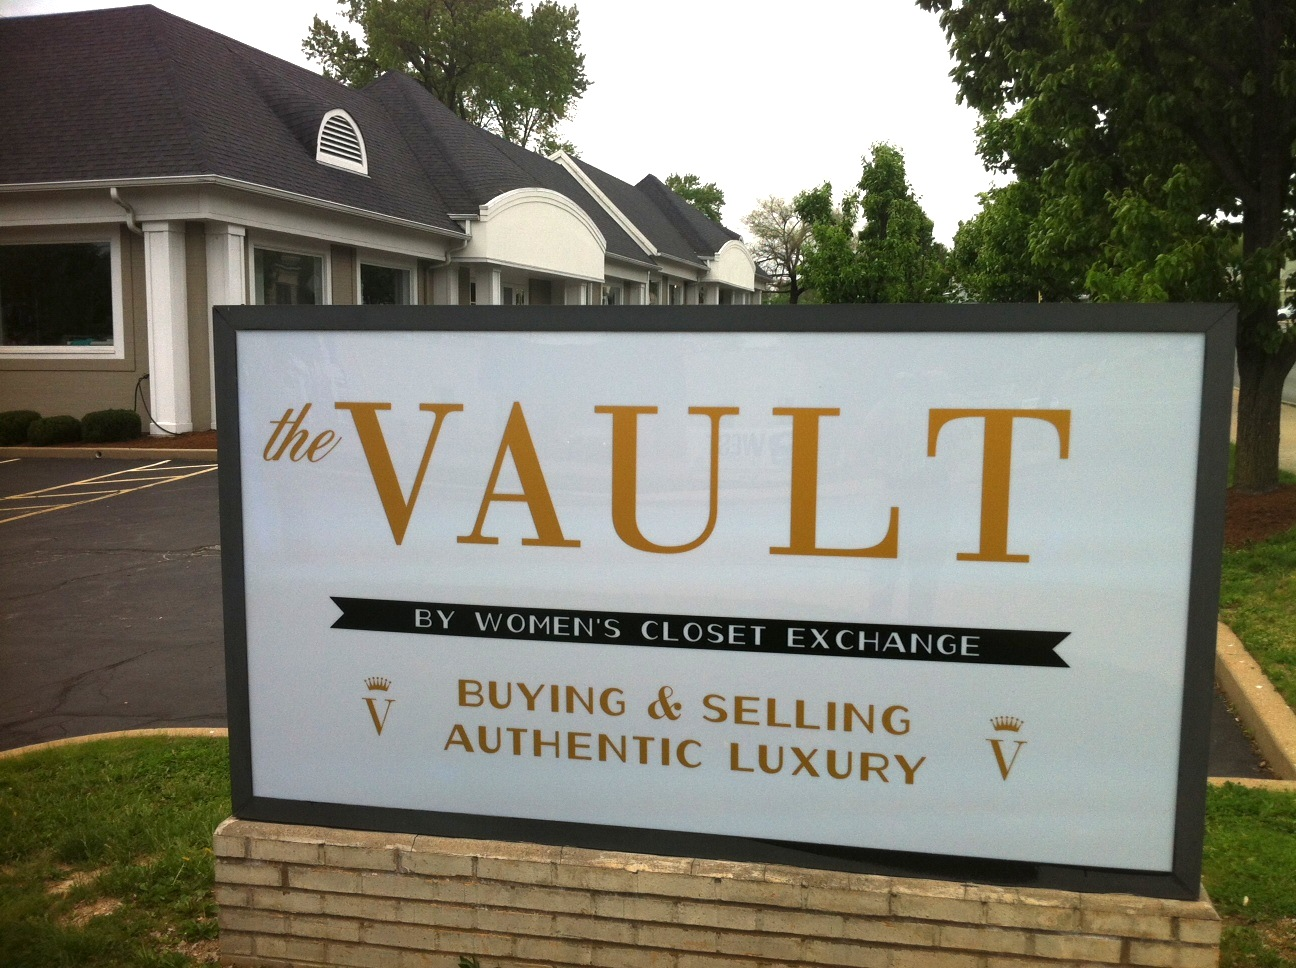 Women clothing stores. Vault clothing store